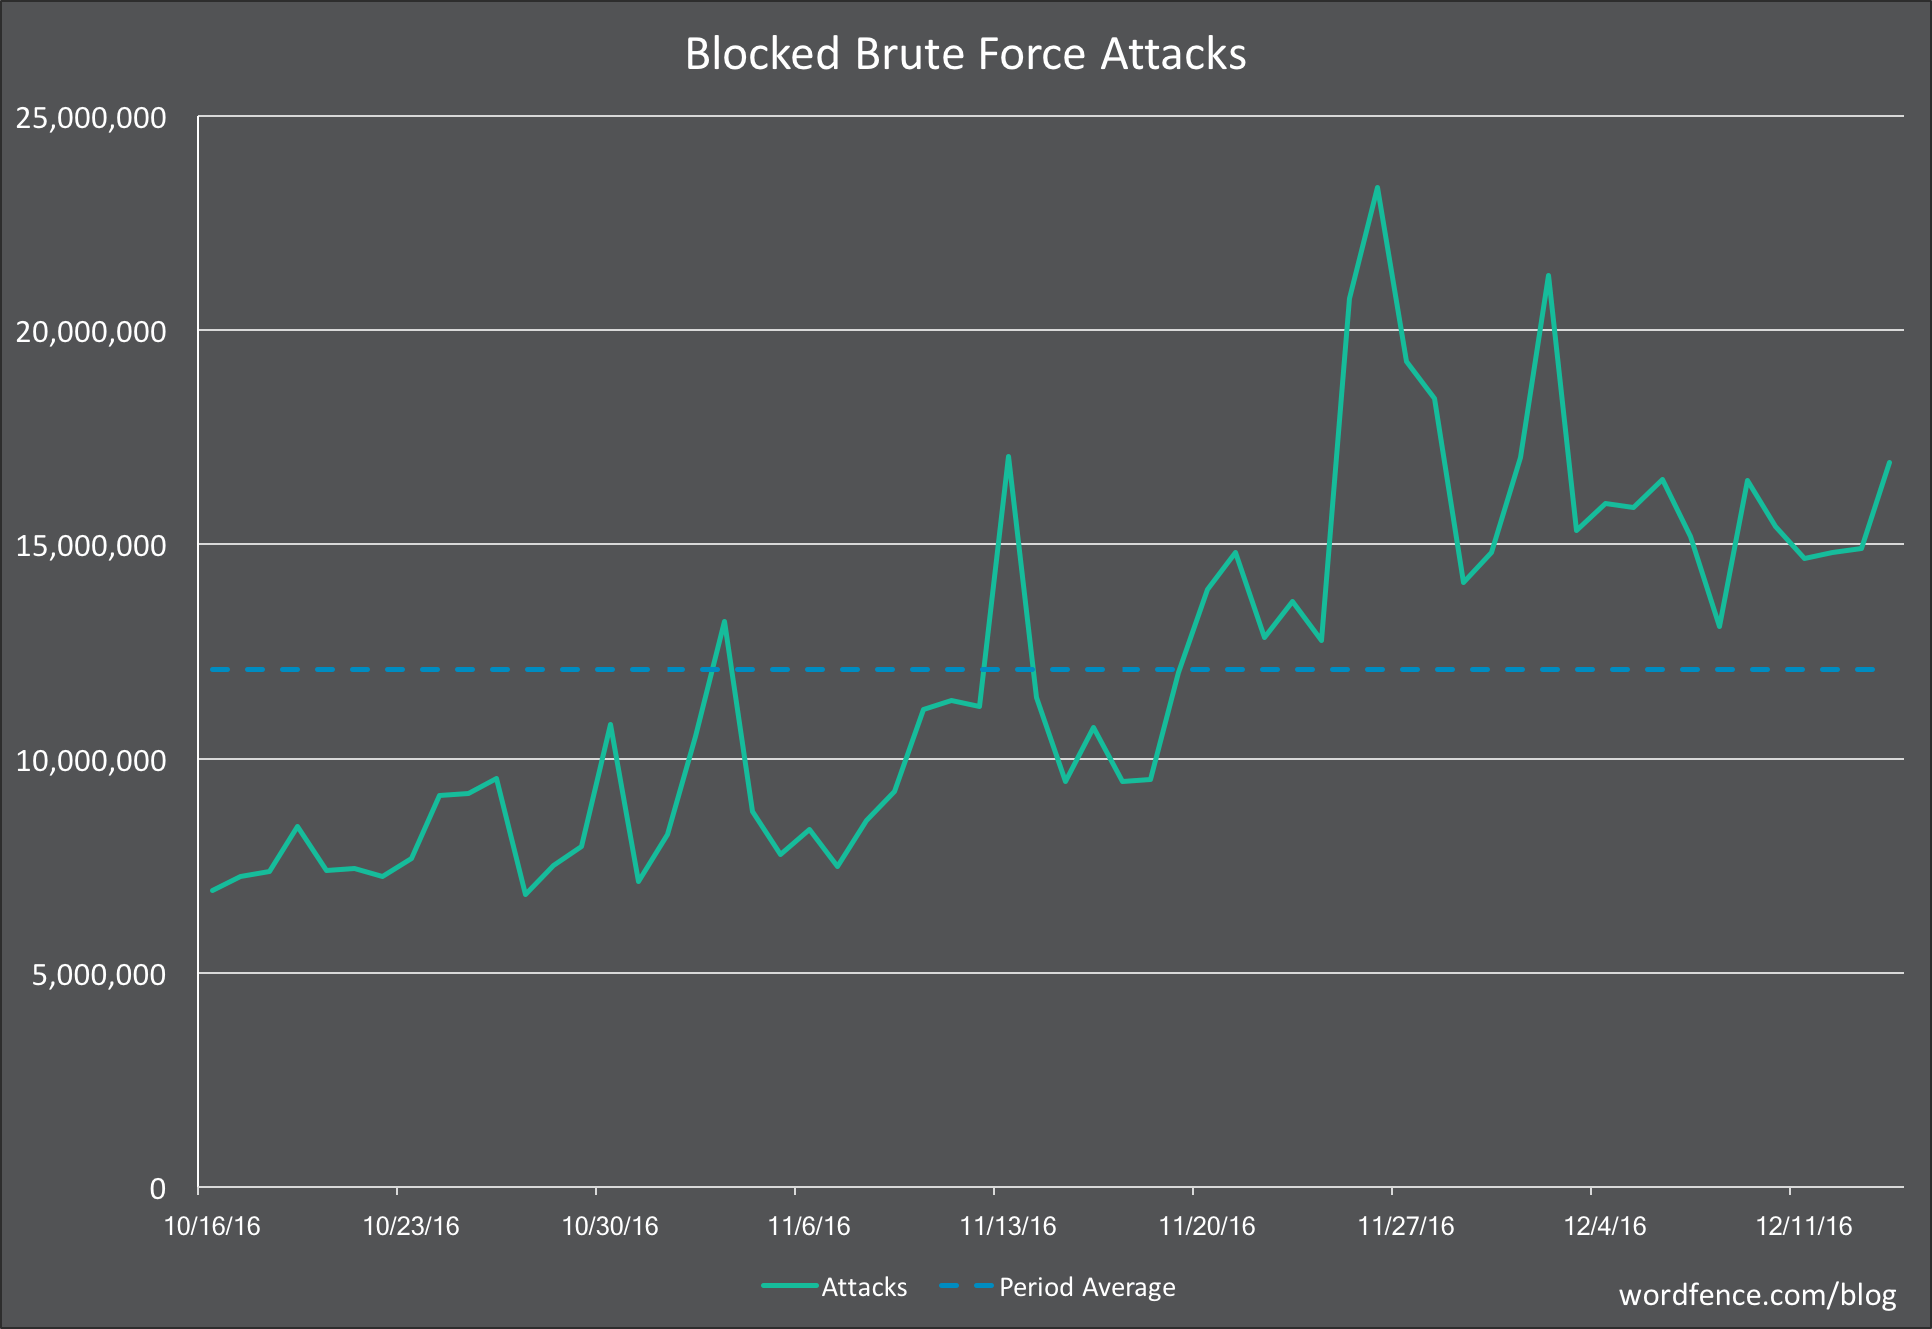 Blocked brute force attacks